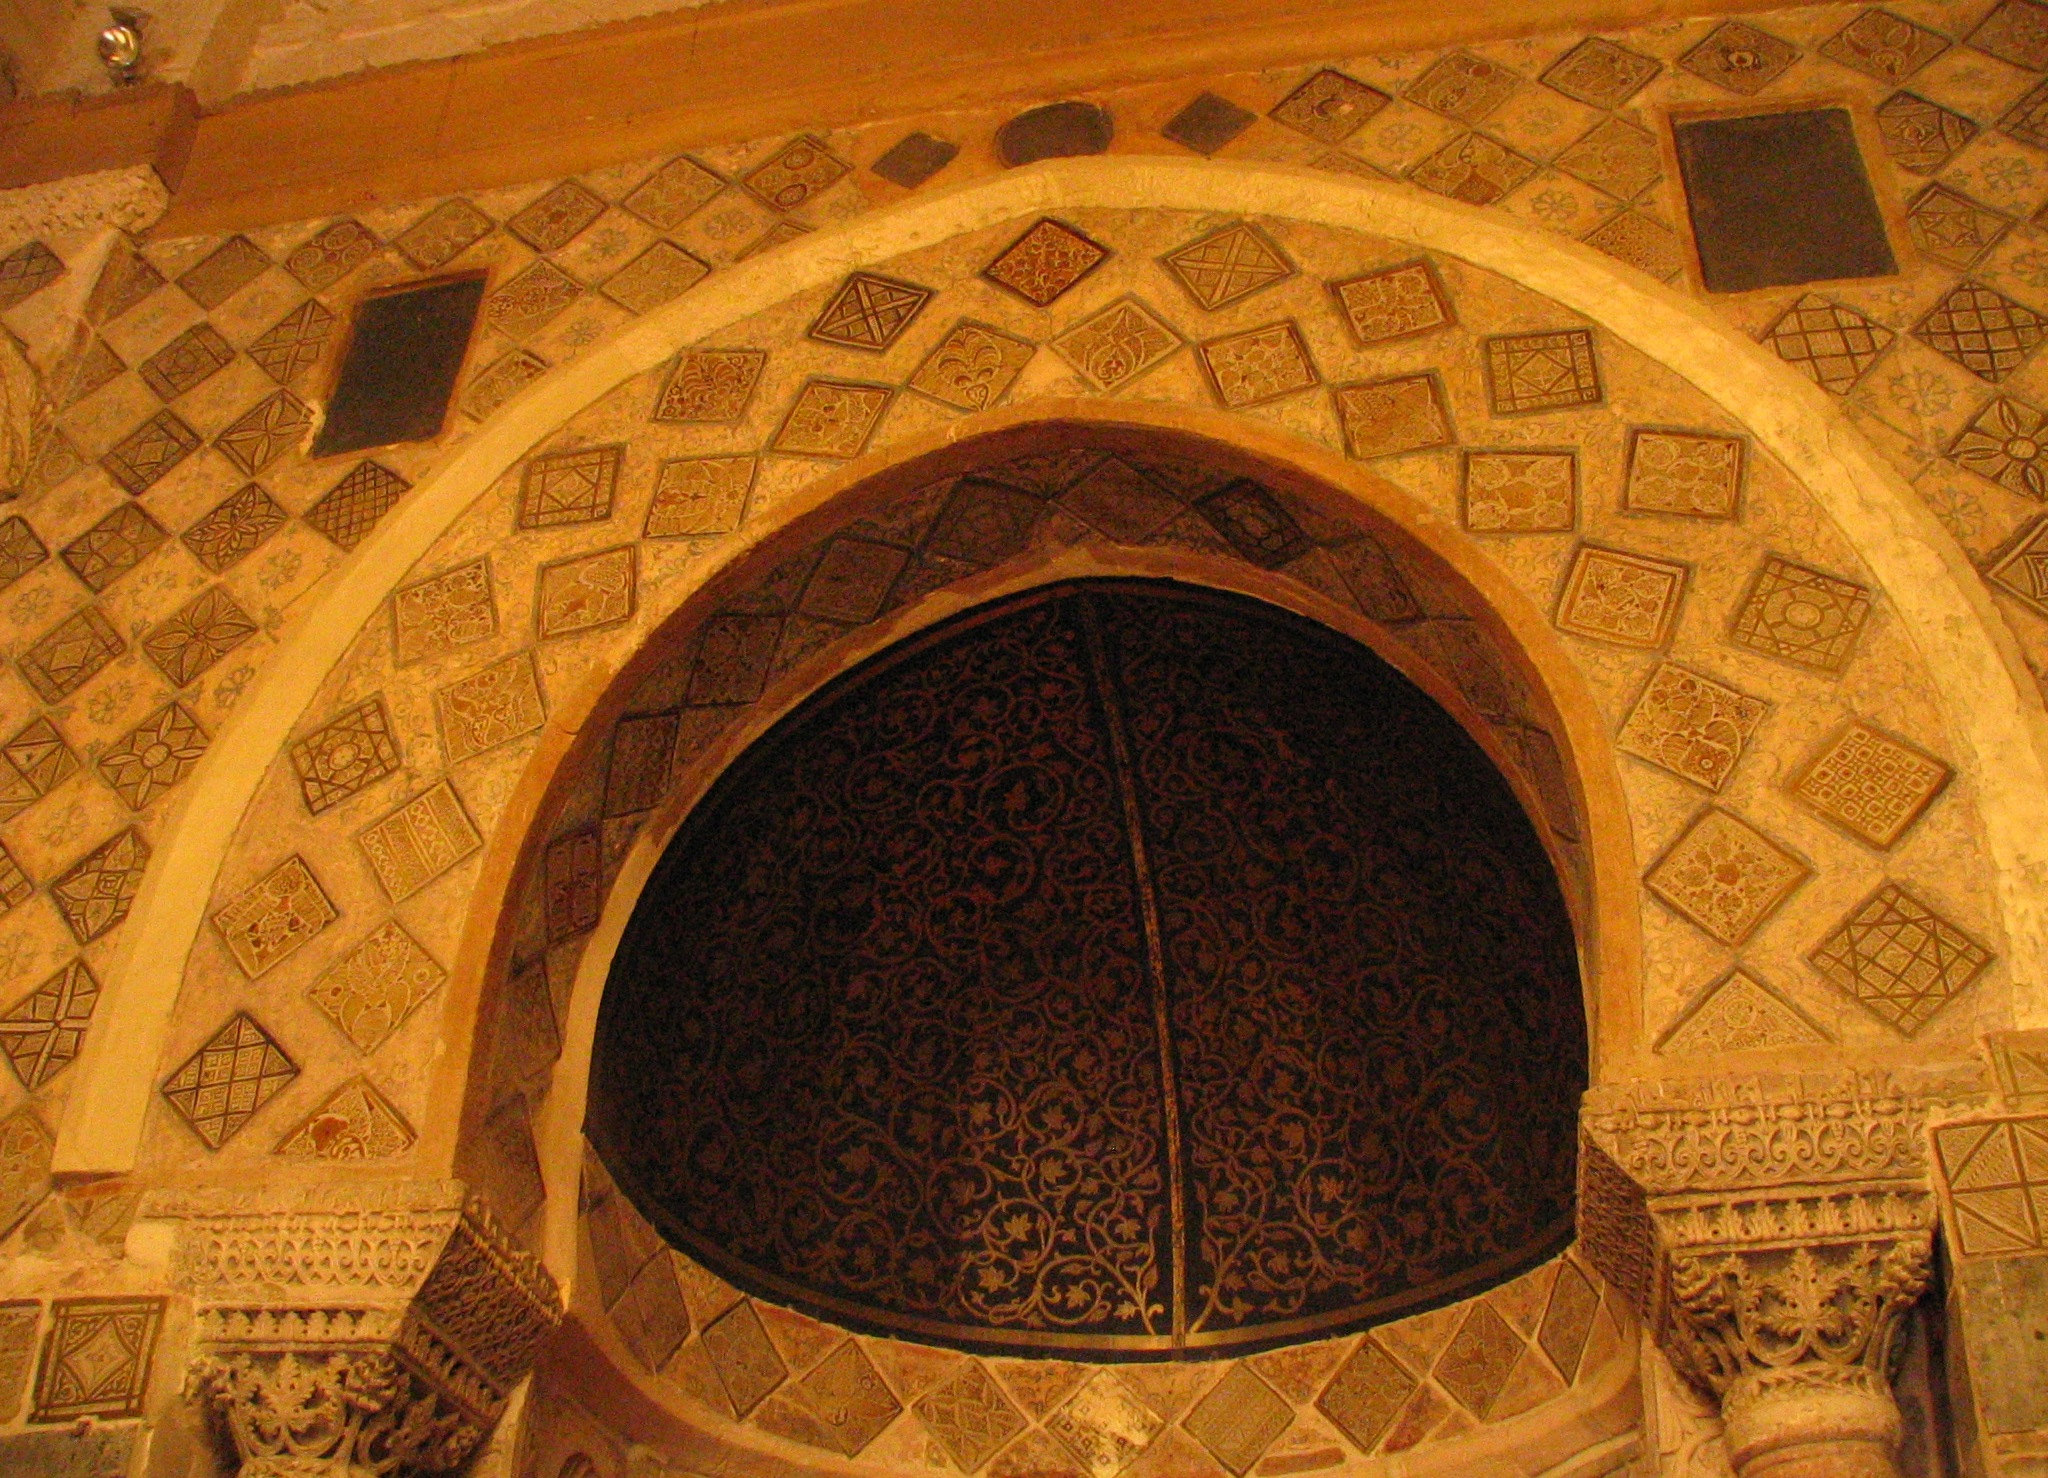 Great Mosque Kairouan Mihrab File:mihrab Great Mosque of